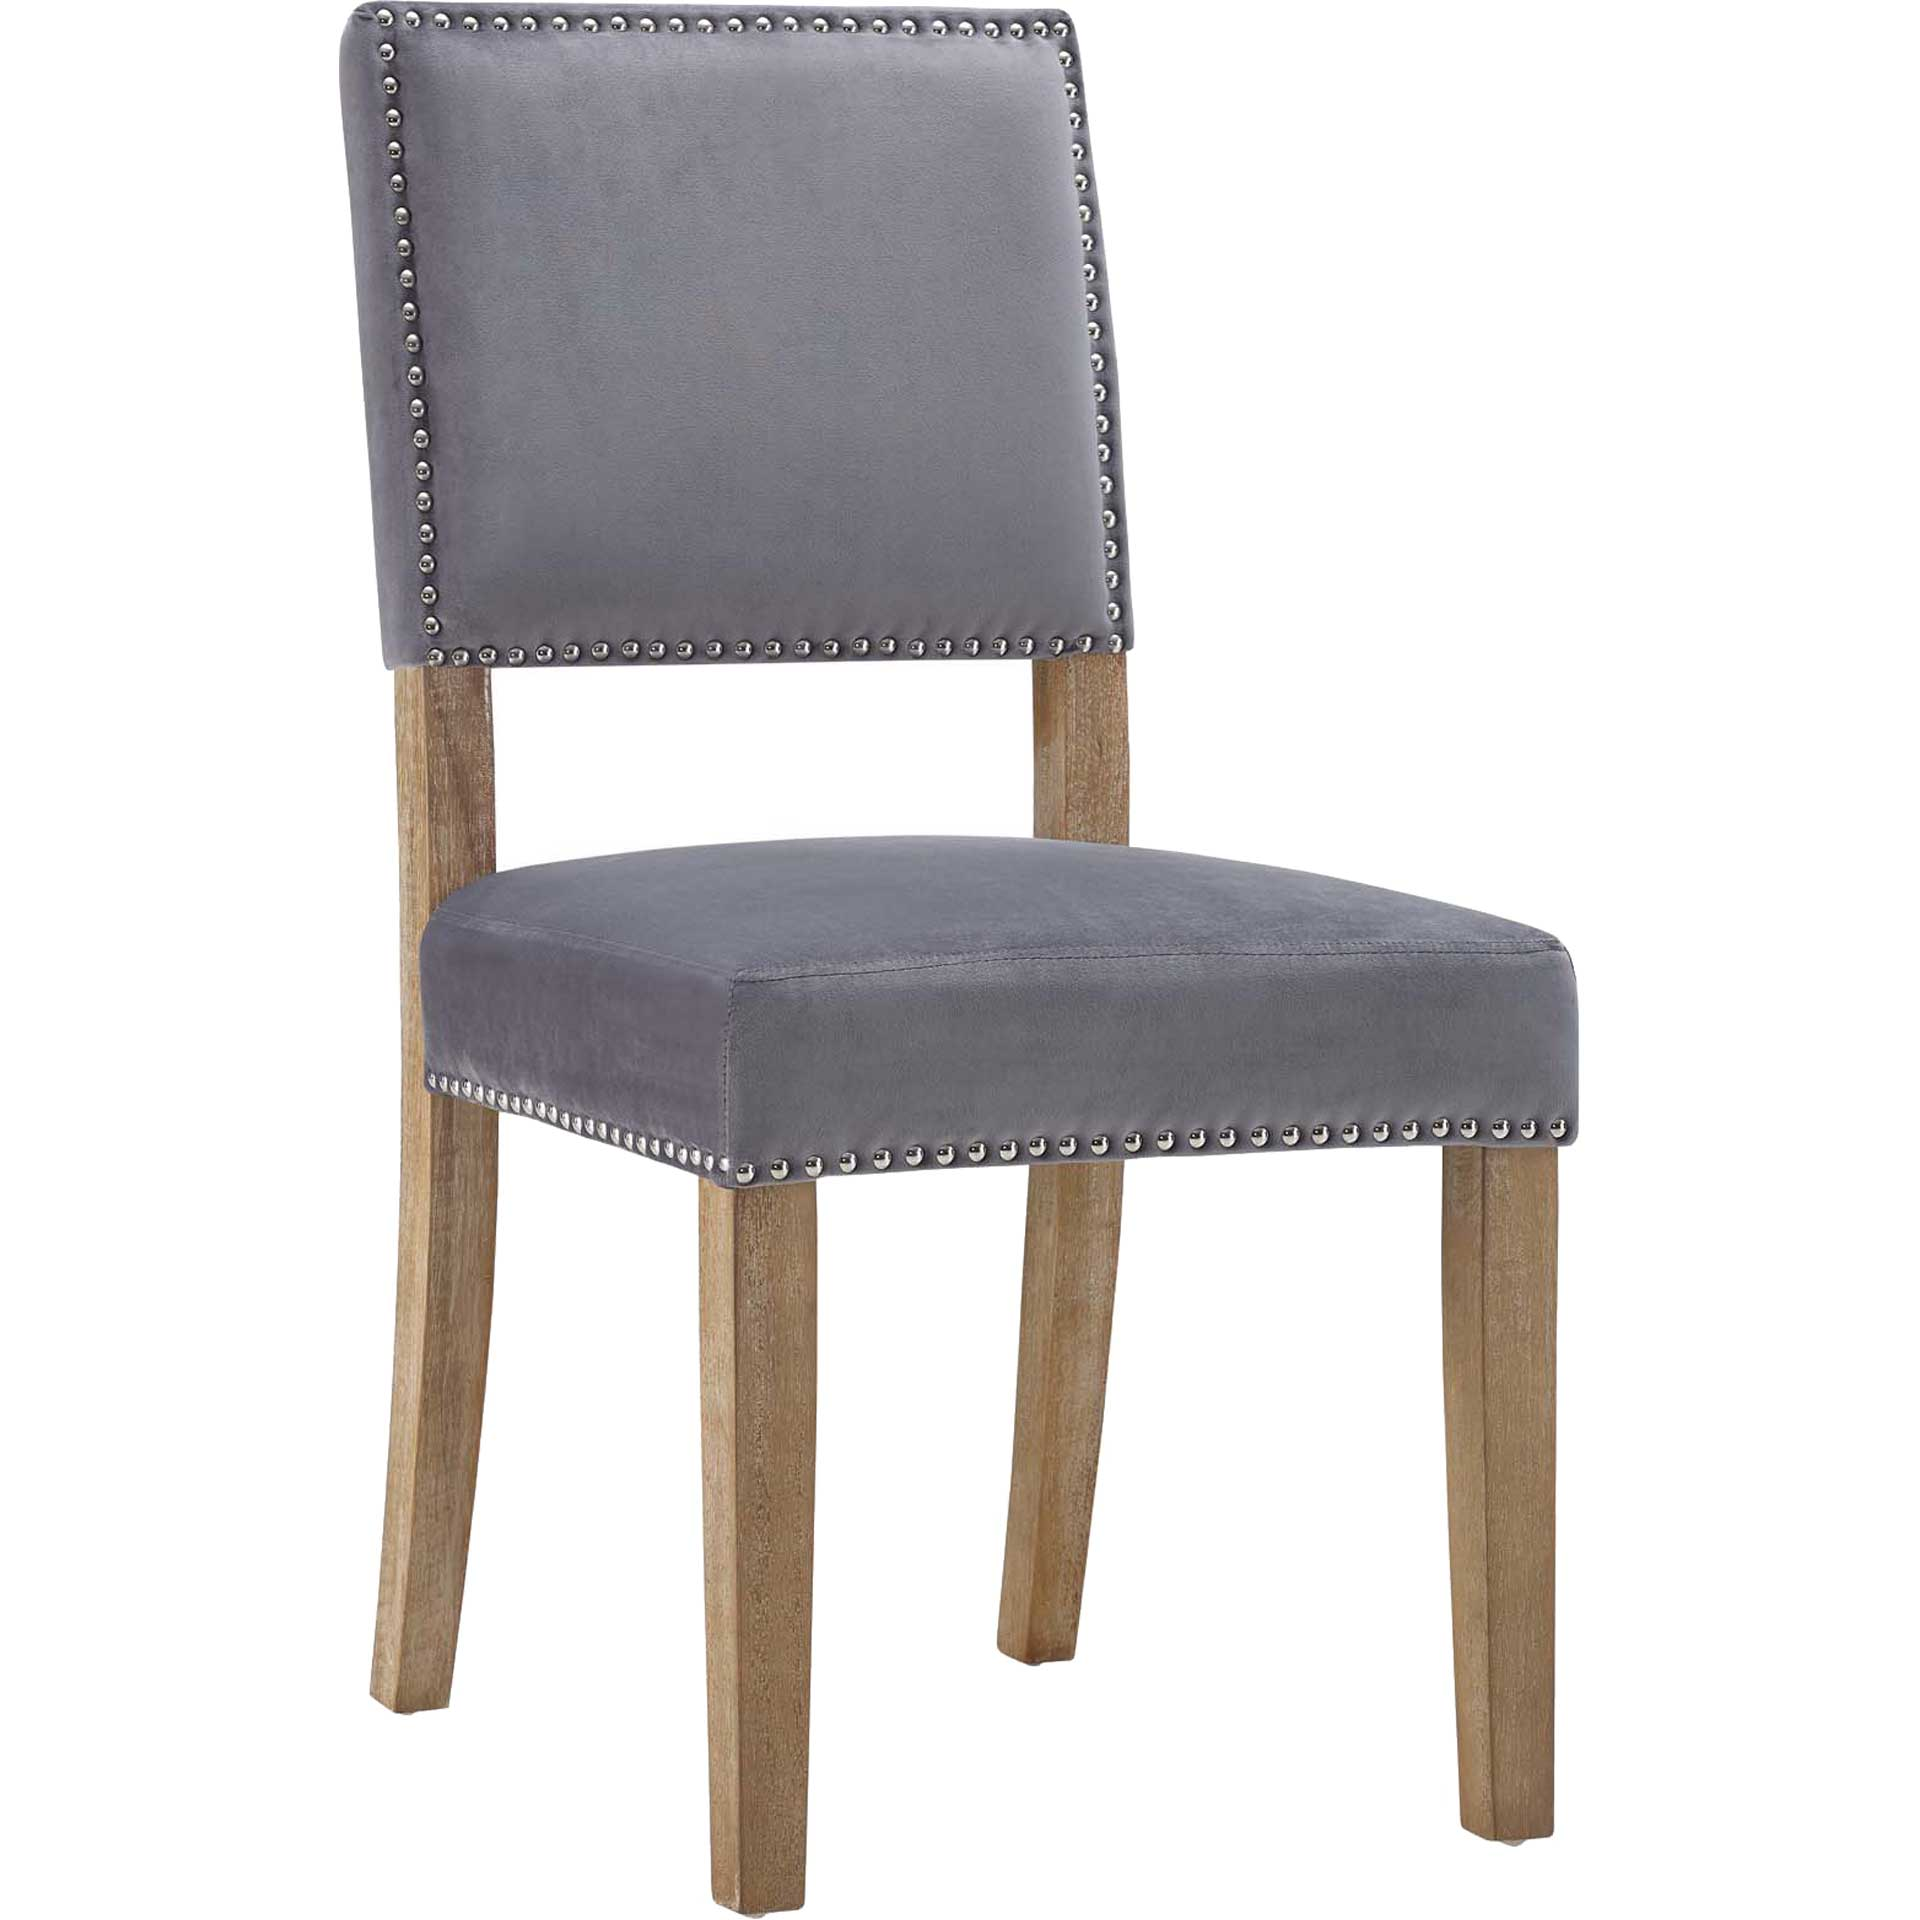 Orwen Wood Dining Chair Gray